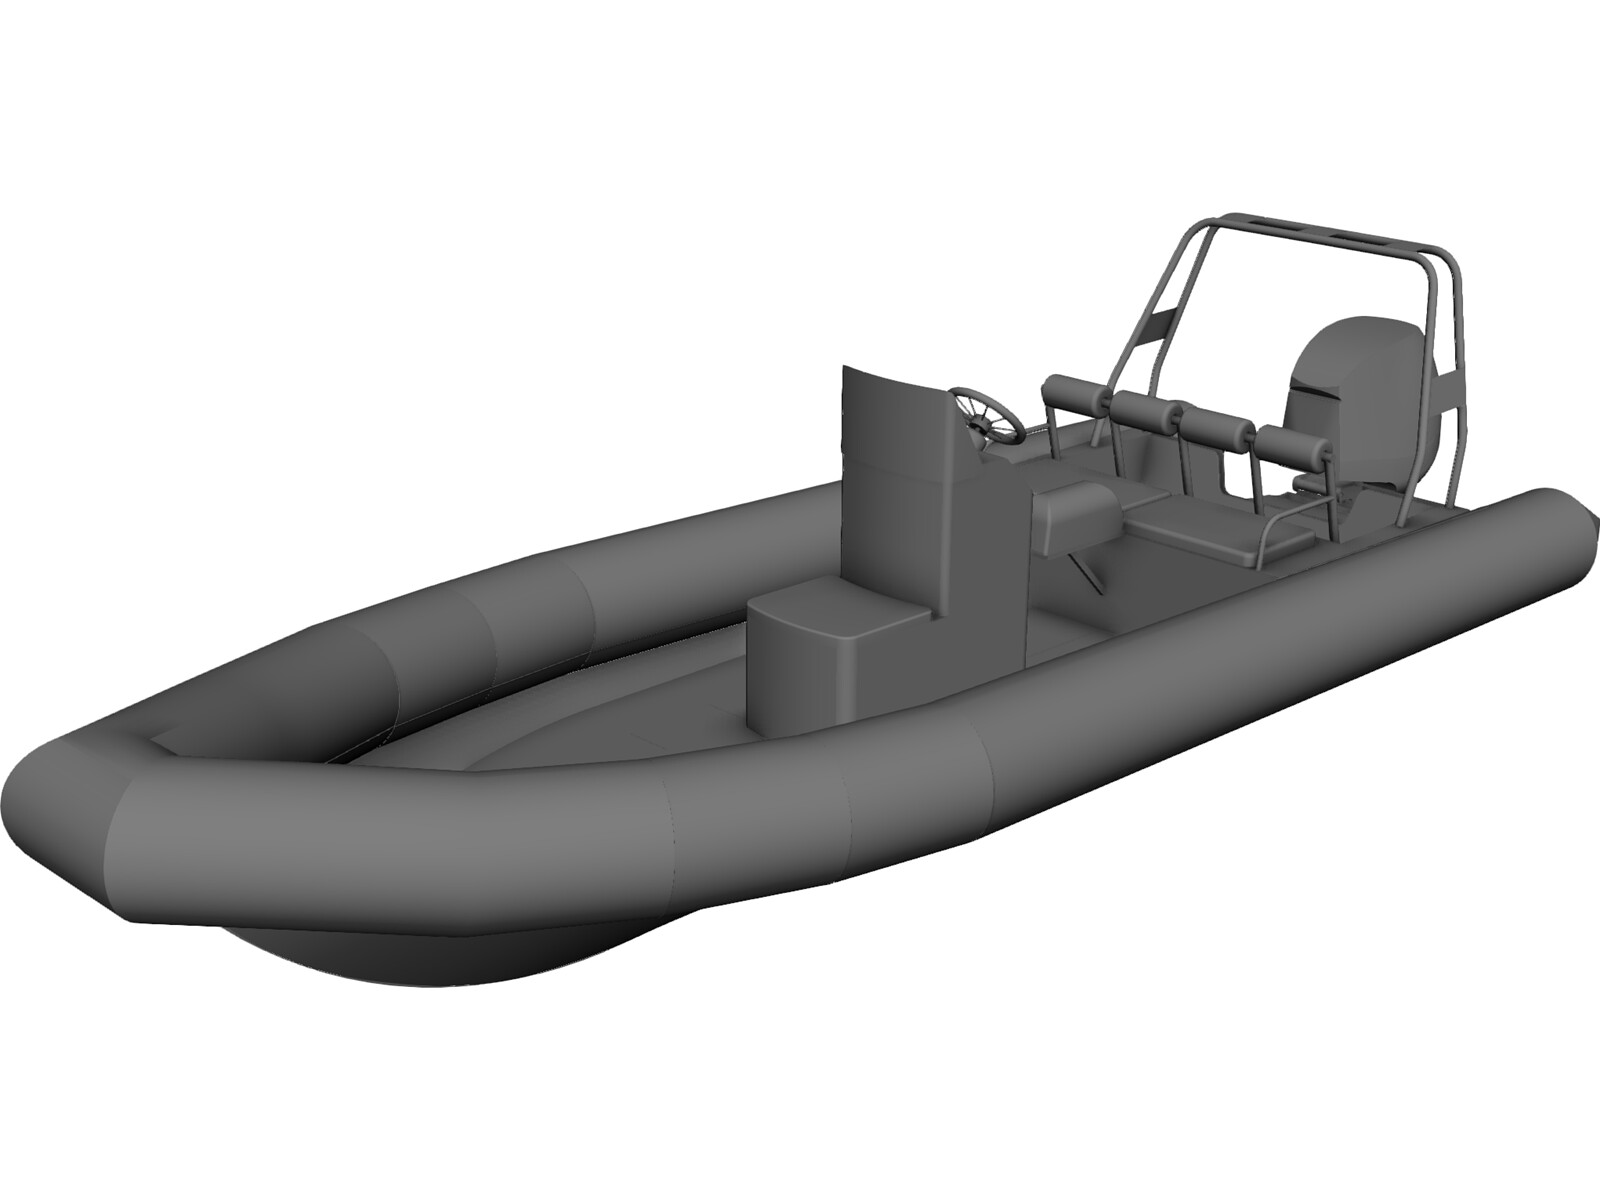 Raptor Rigid Inflatable Boat (Rib) 6.95m 3D CAD Model